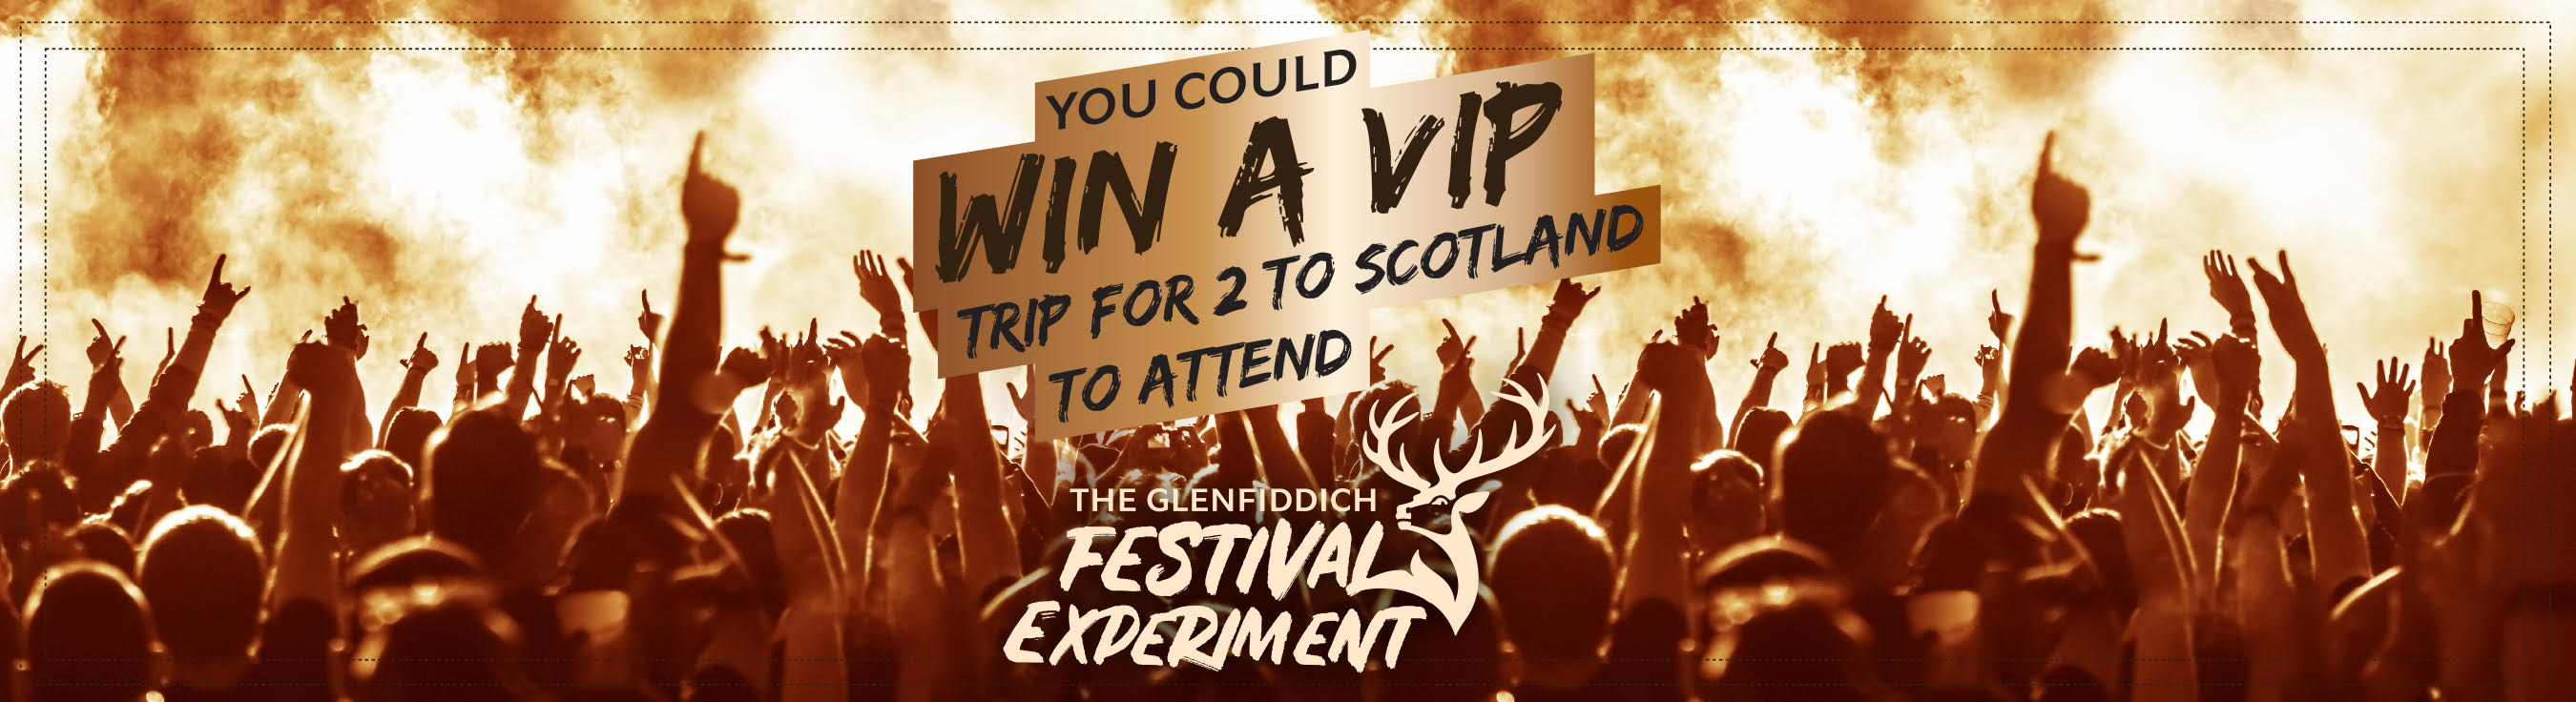 online contests, sweepstakes and giveaways - Glenfiddich Festival Experiment